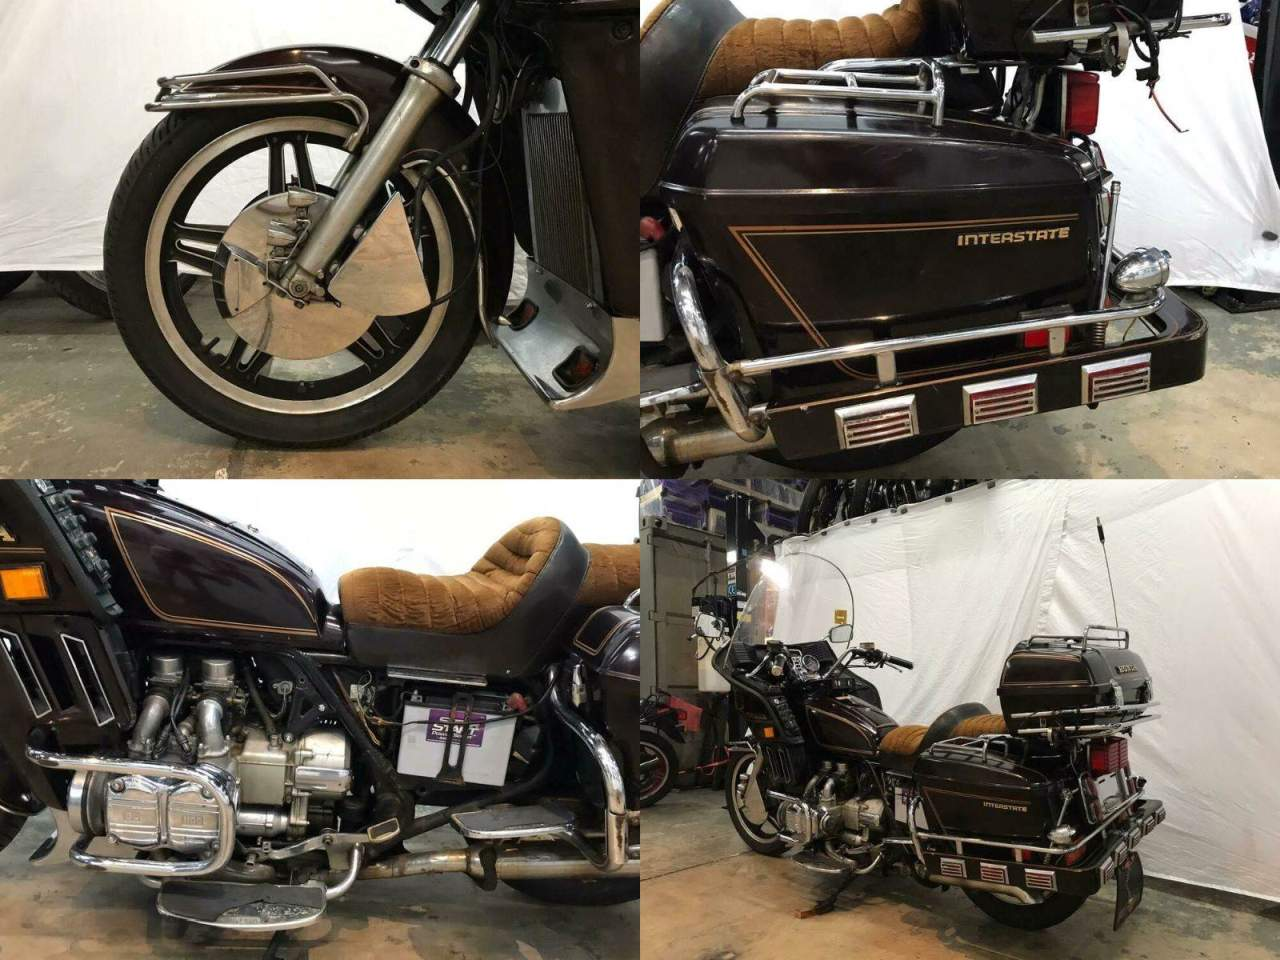 1981 Honda Gold Wing  used for sale near me